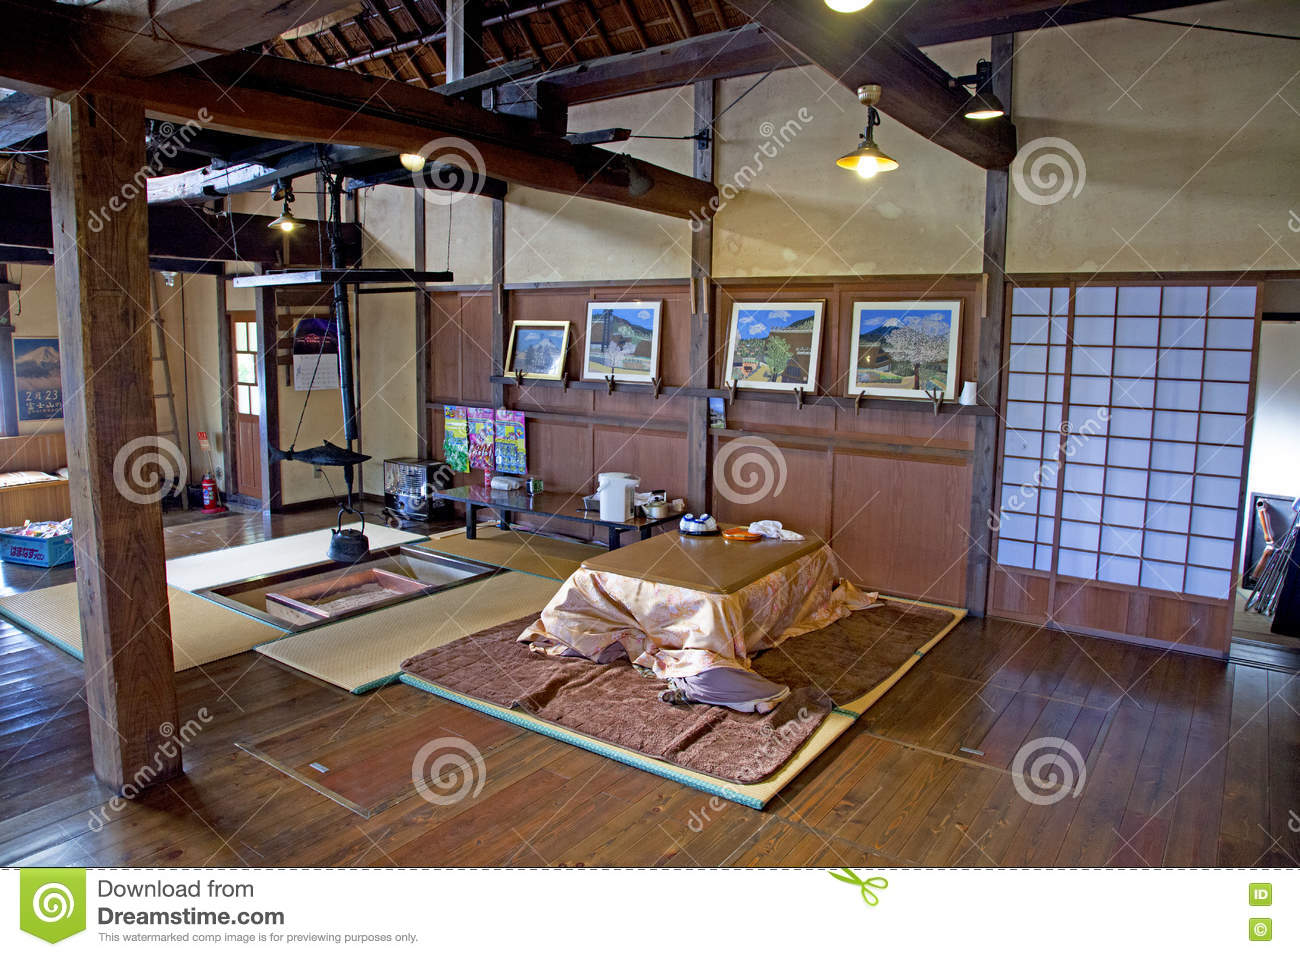 Interior of an old style traditional houses in the village of saiko iyashi no sato nenba near mount fuji